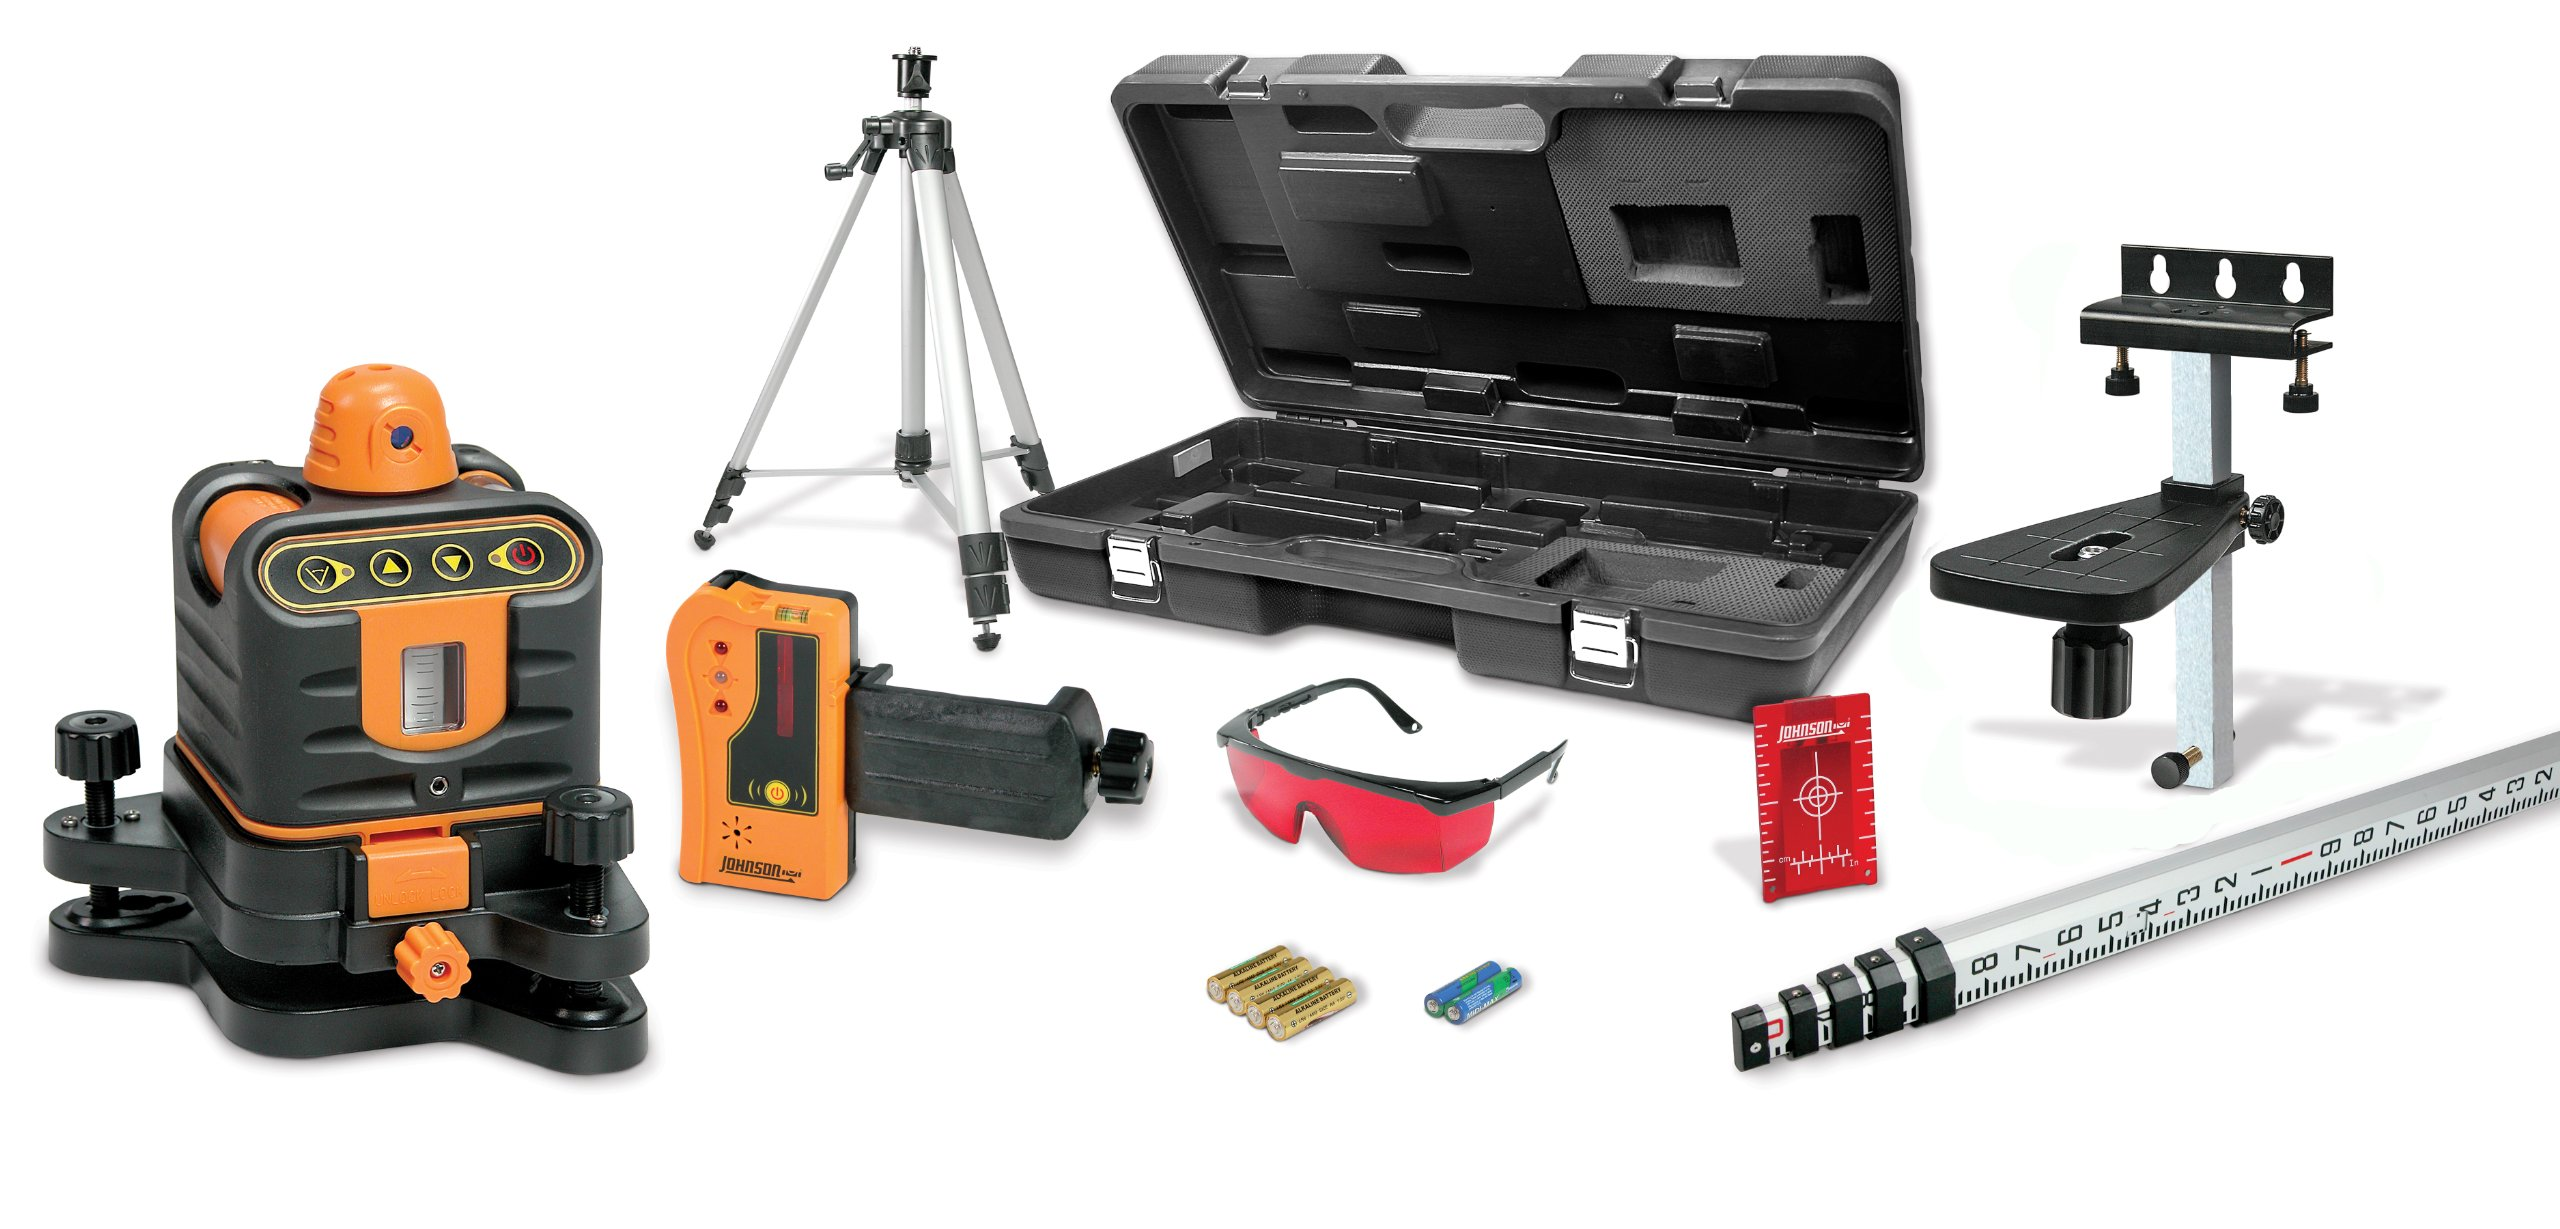 Johnson Level and Tool 40-6512 Manual Leveling Rotary Laser Level